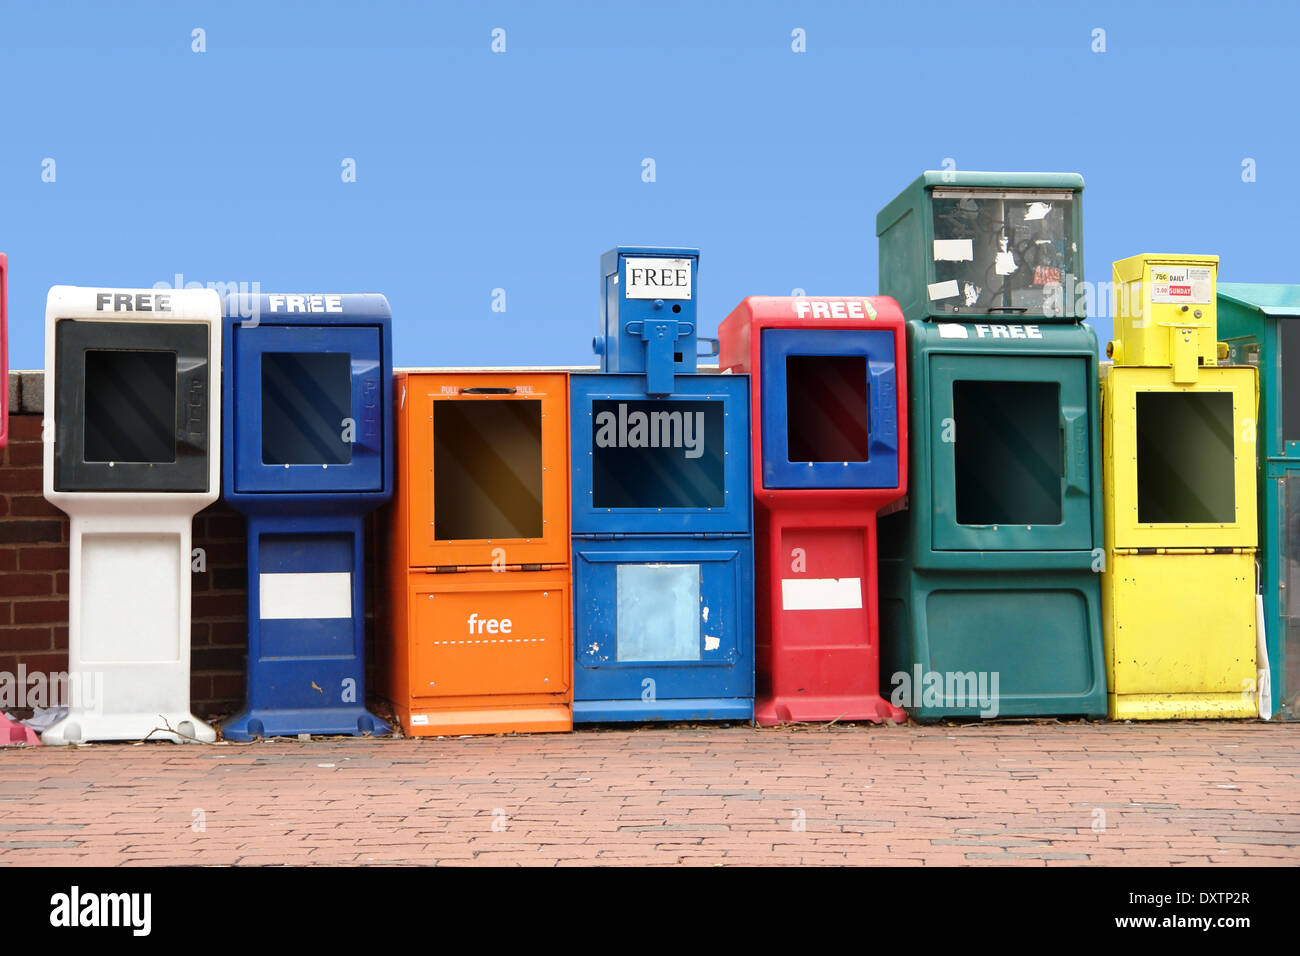 symbolic picture showing some colorful news racks standing in a row at the Harvard Square in Cambridge Massachusetts, USA) - Stock Image